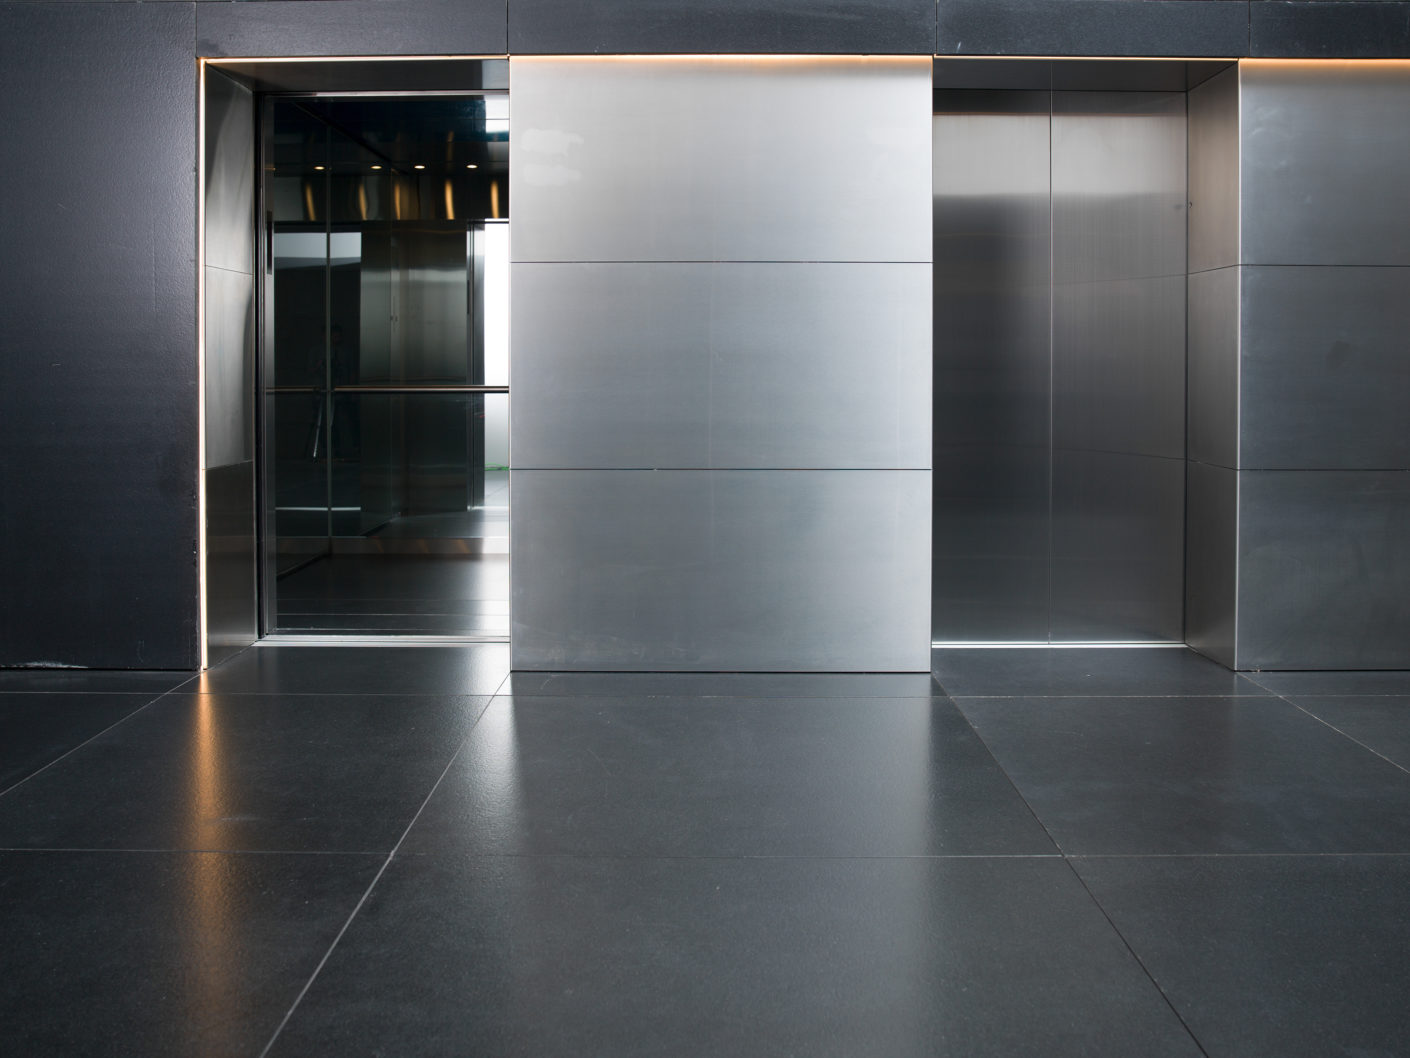 Schindler elevators provide access to the nearly 250-m-high tower.